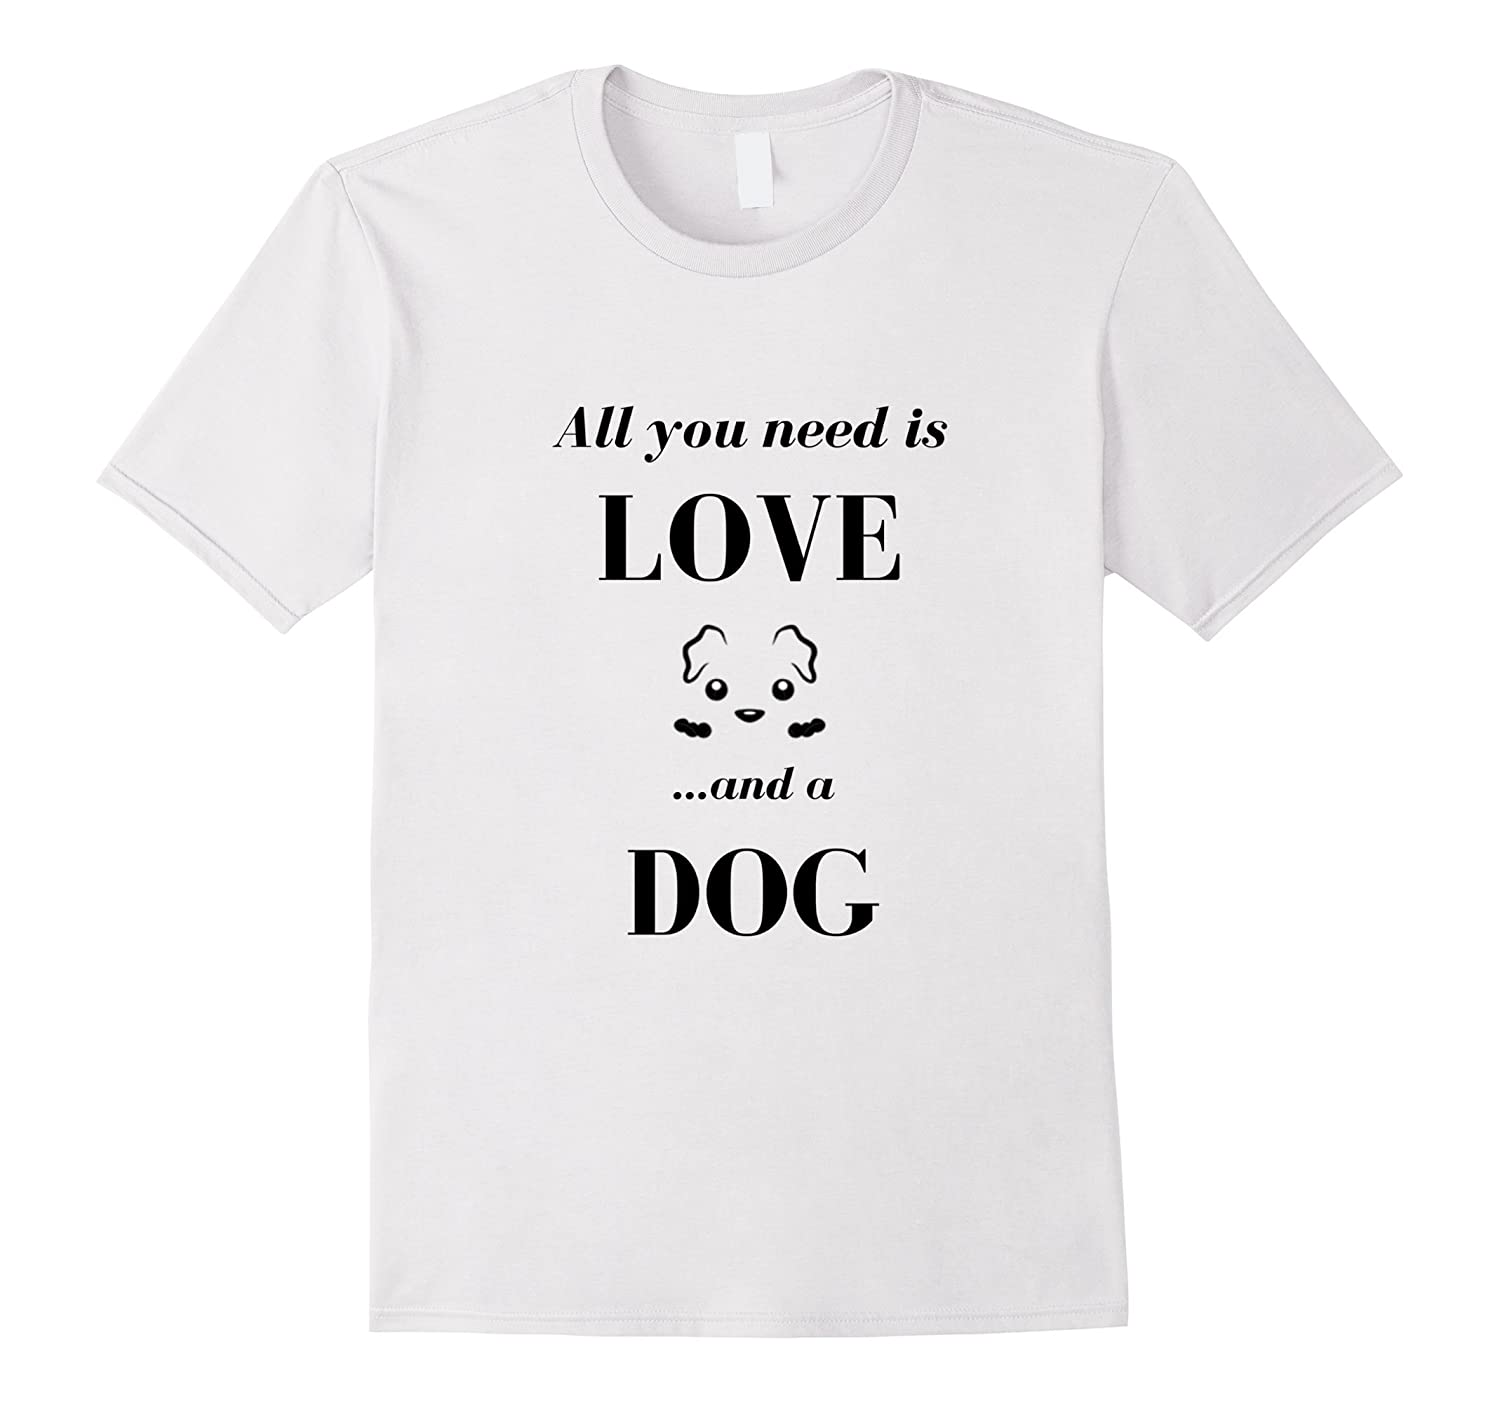 All you need is love and a dog-TD